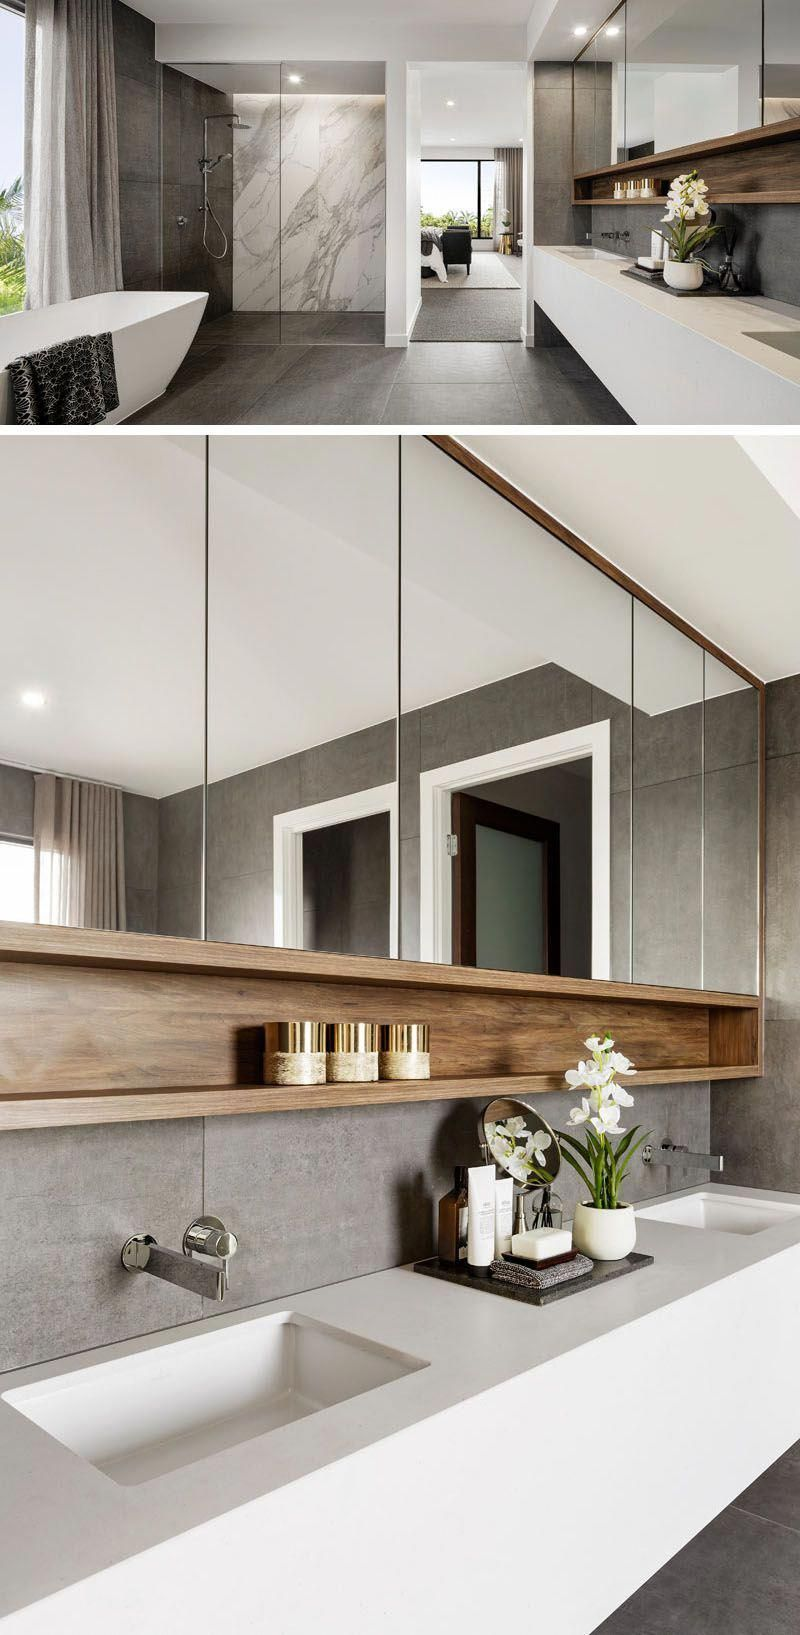 This modern ensuite bathroom features a large walk-in shower, a